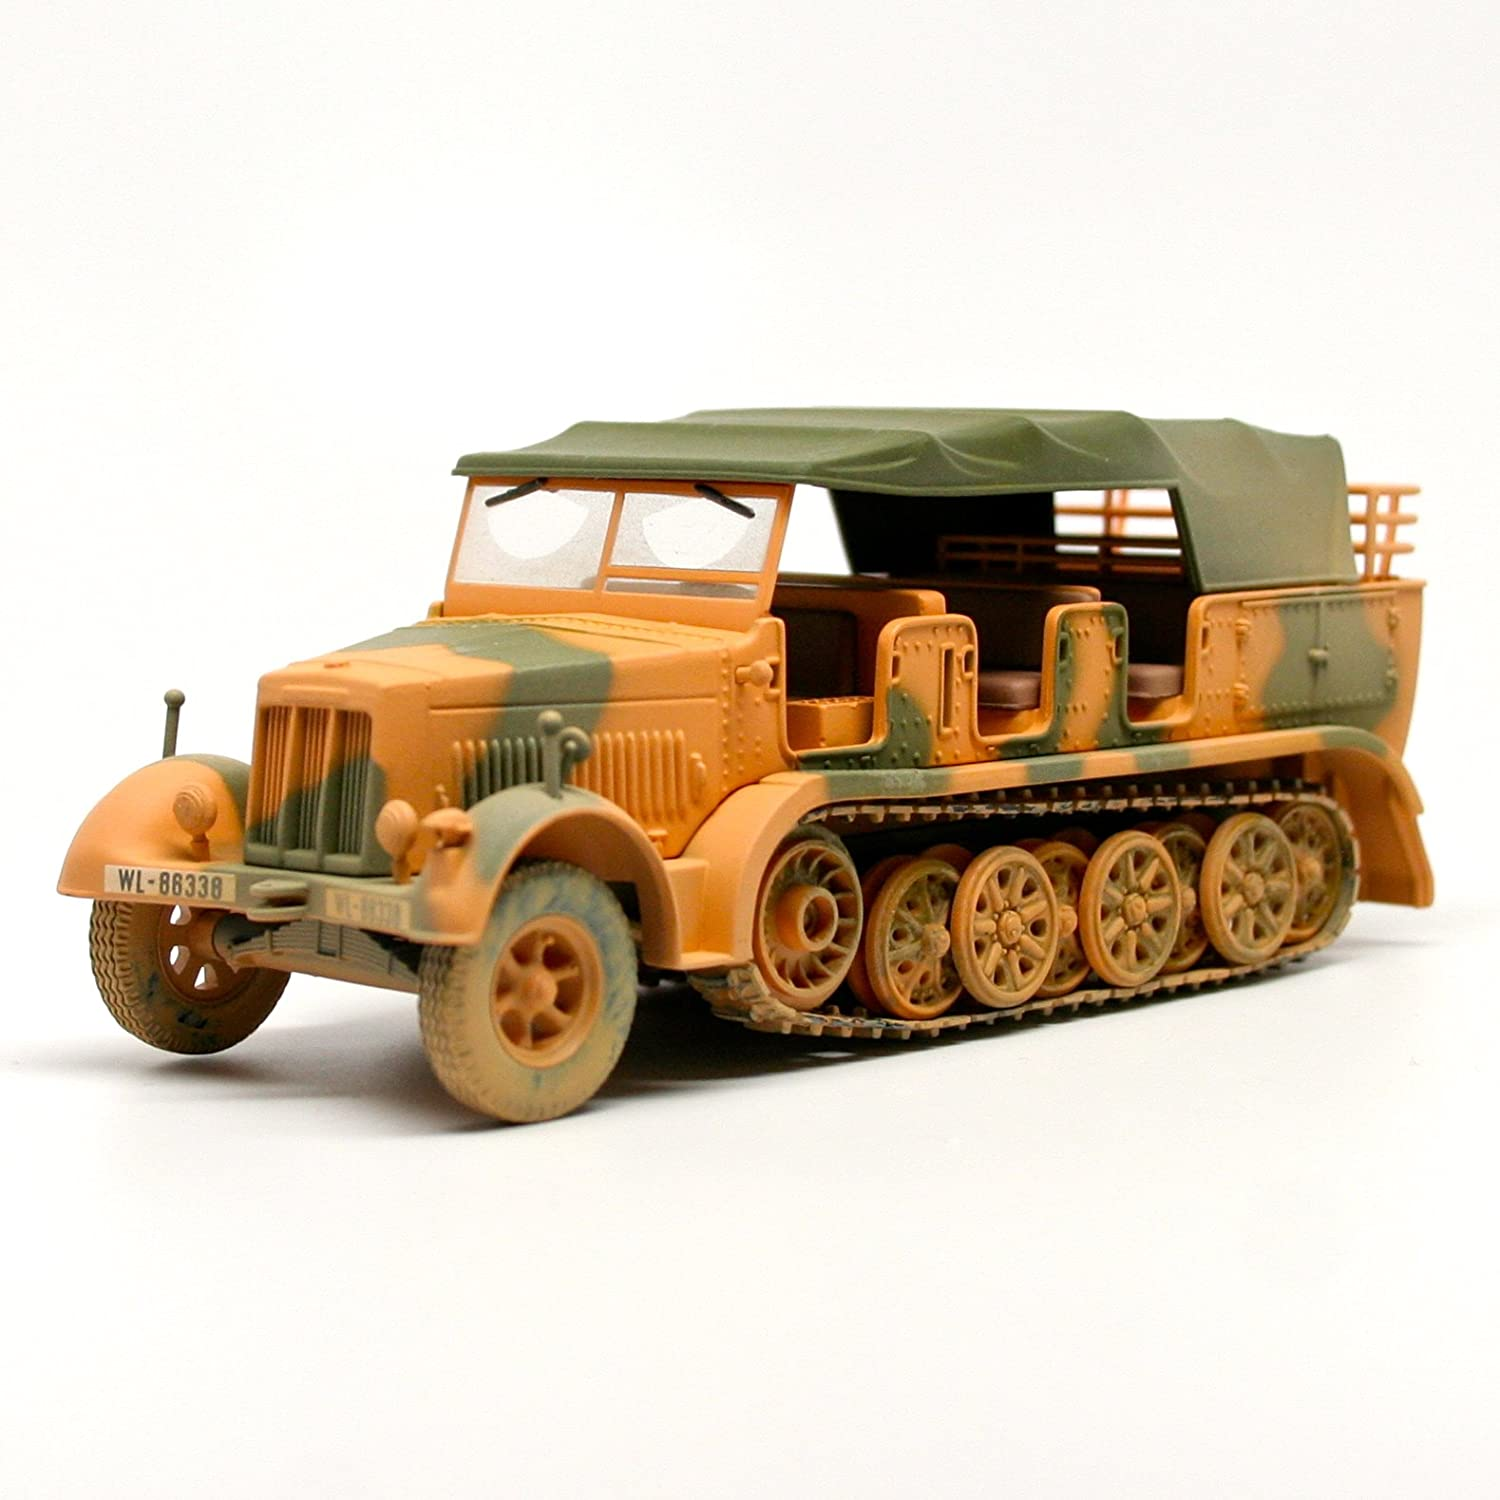 1/50th Scale Sd.Kfz.7/1 Krauss-Maffei Semi-Track - German Army - Hermann Goering Panzer Corps 71bj2B1bjk8LSL1500_